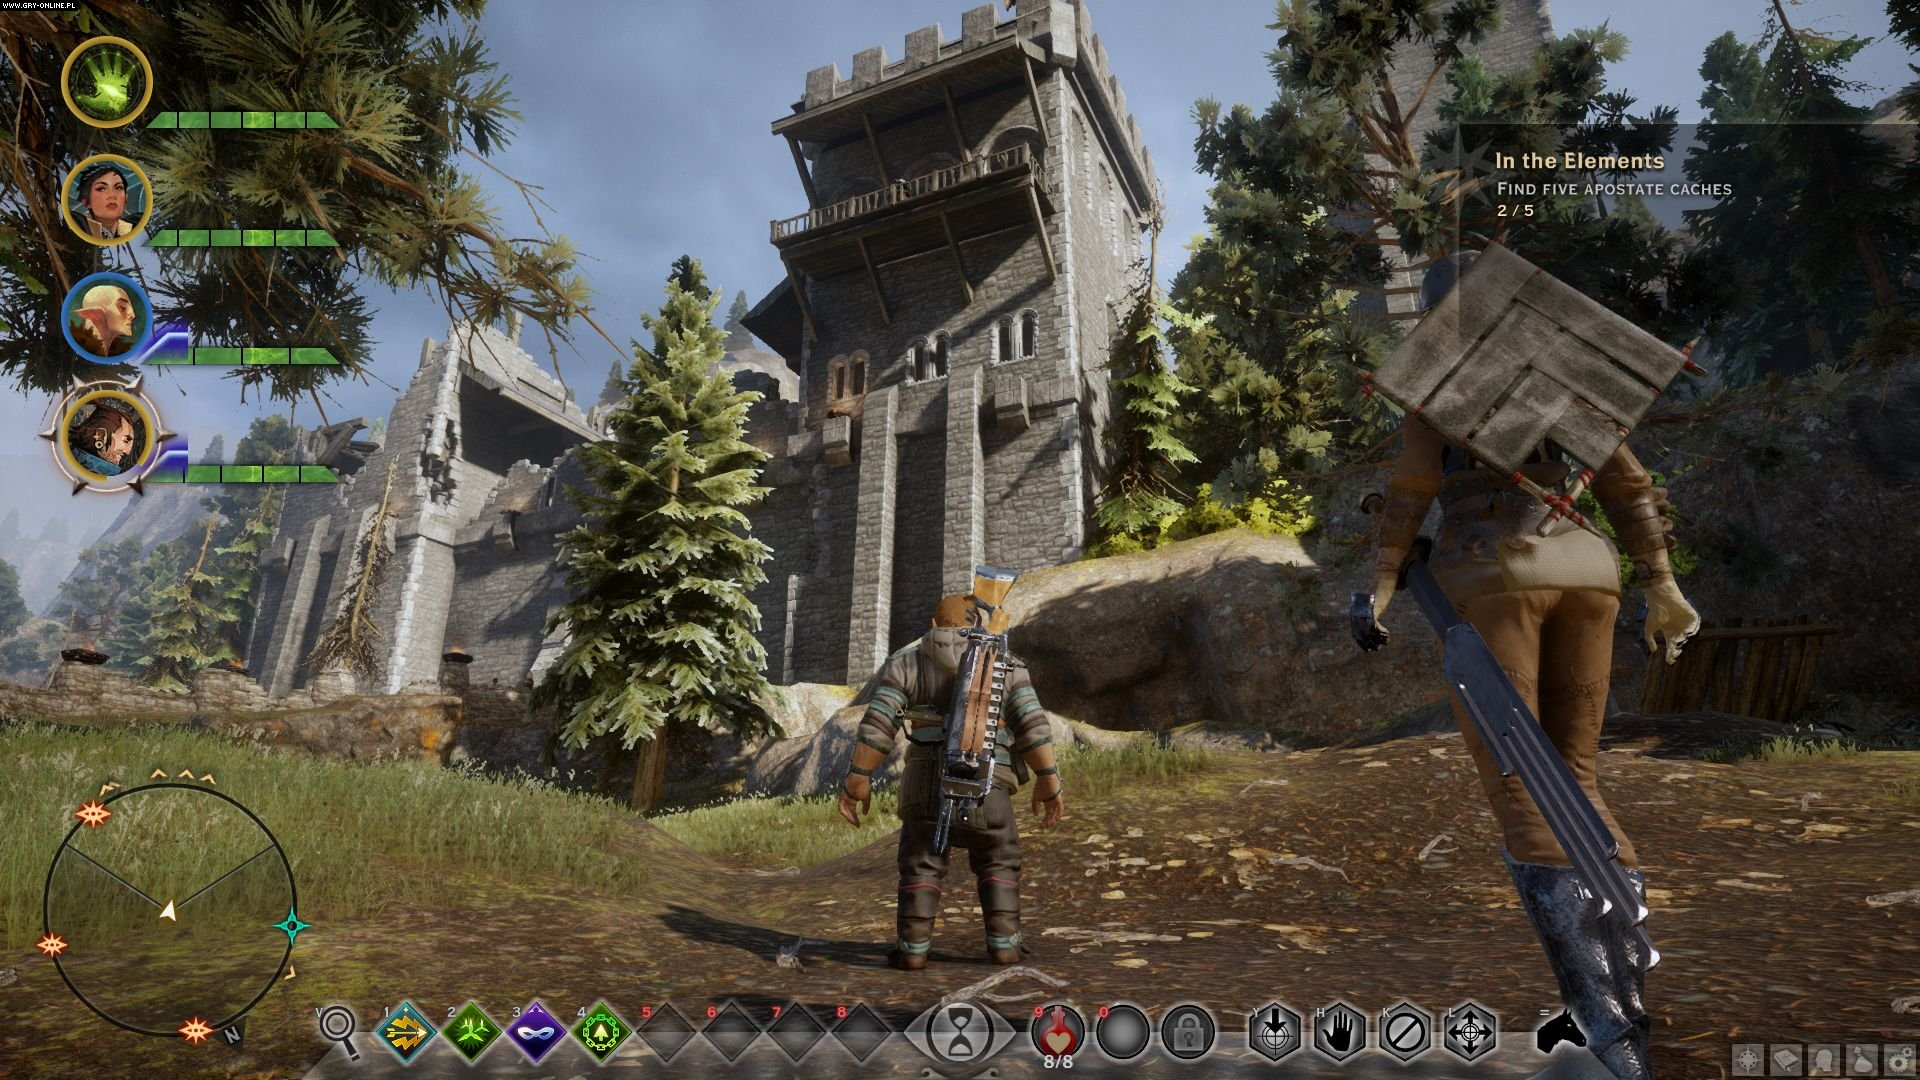 Dragon Age: Inquisition PC, X360, PS3 Games Image 1/225, BioWare Corporation, Electronic Arts Inc.